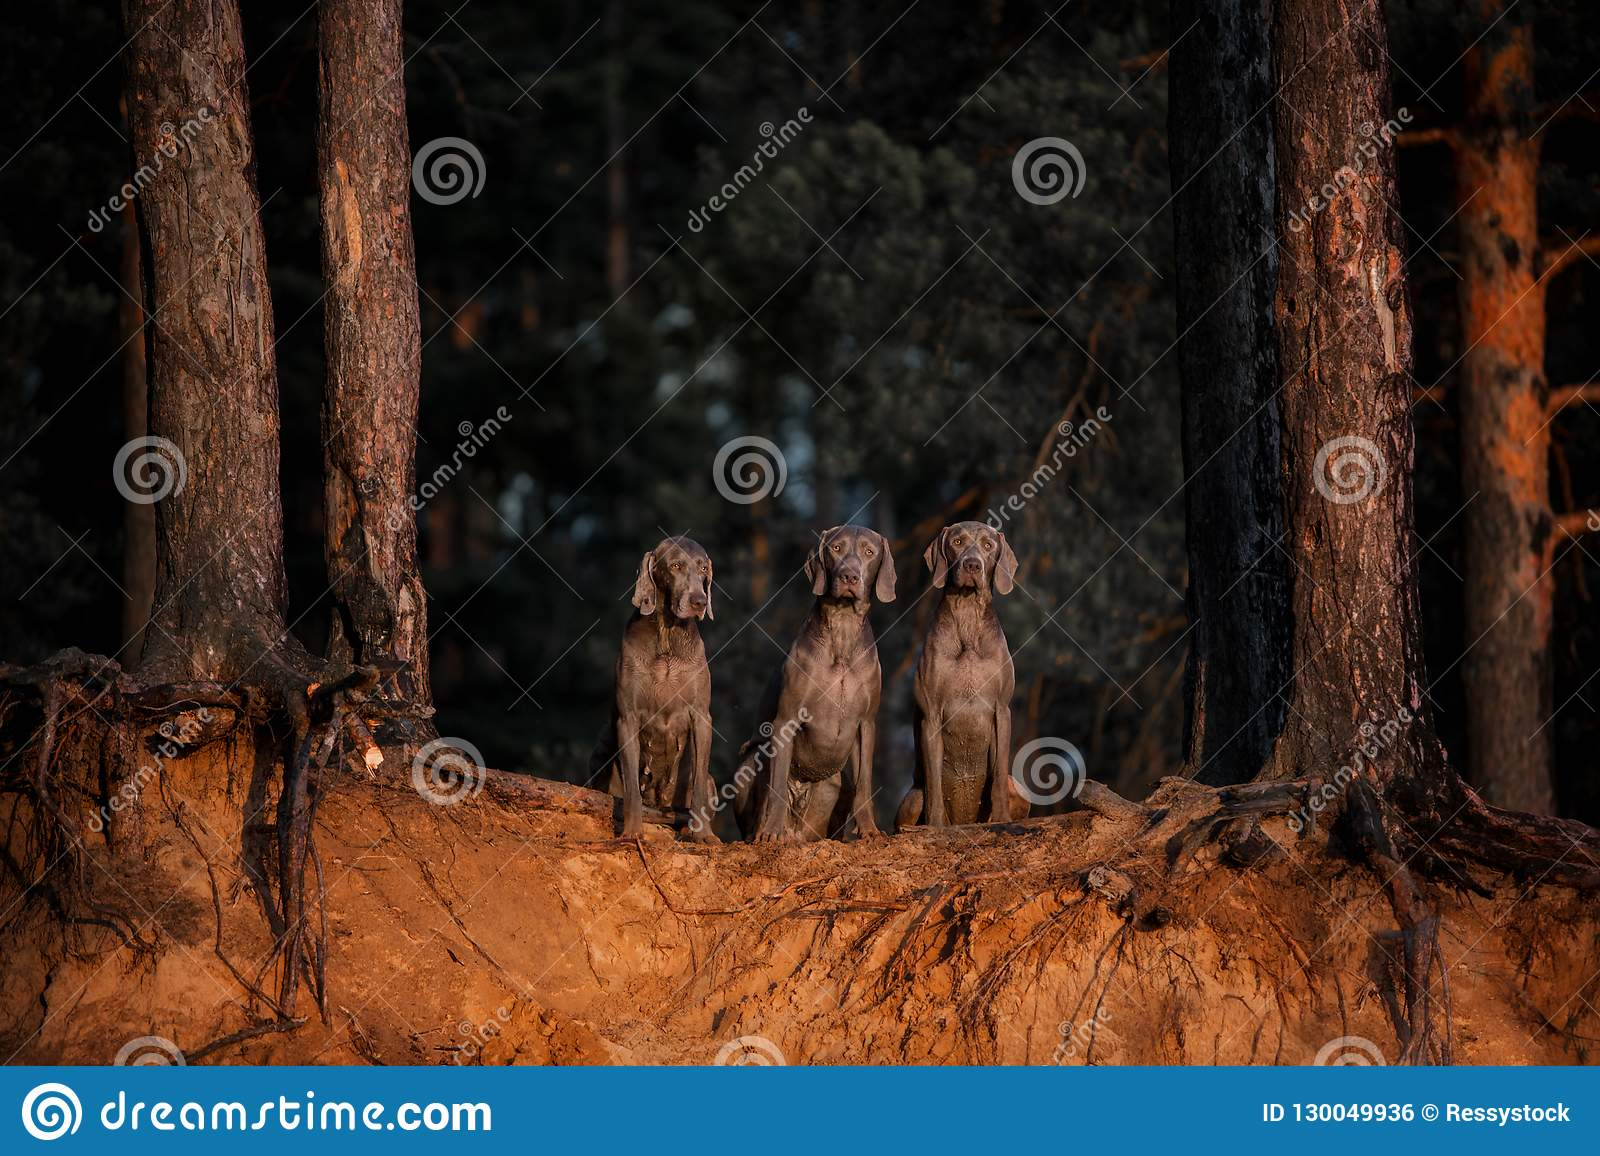 Three dogs in a row looking at camera in forest